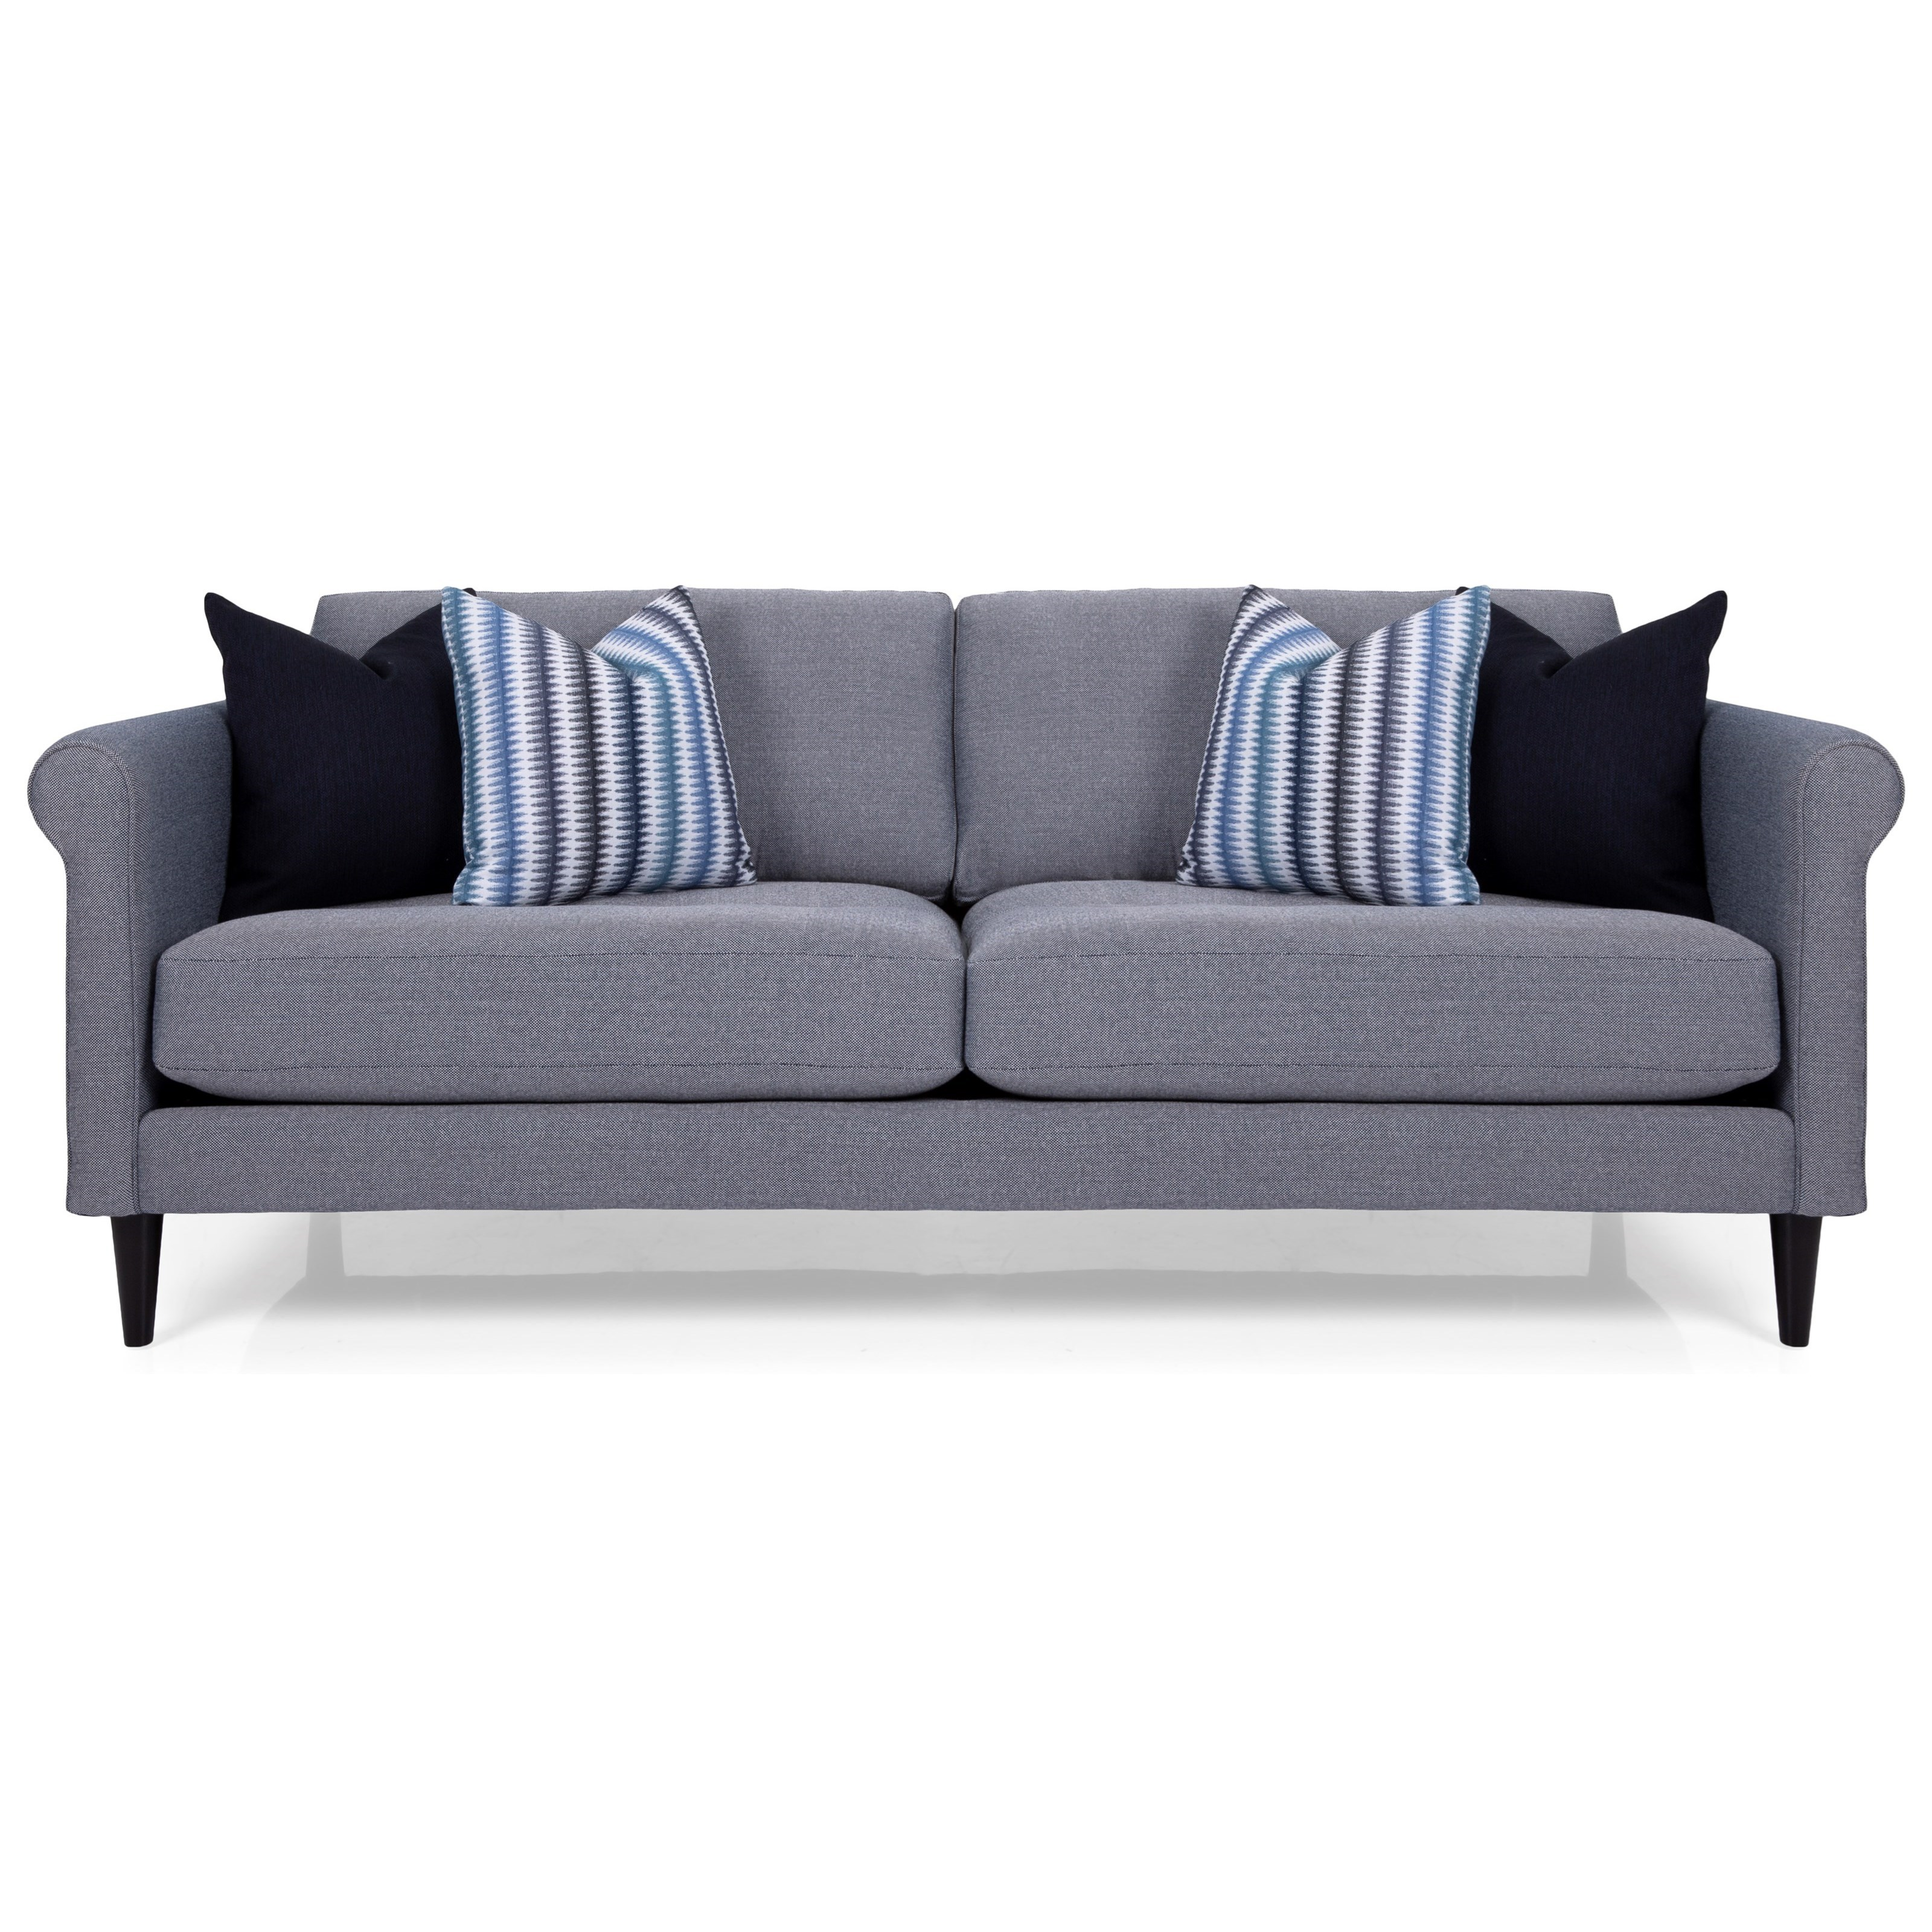 2M1 Sofa by Decor-Rest at Stoney Creek Furniture